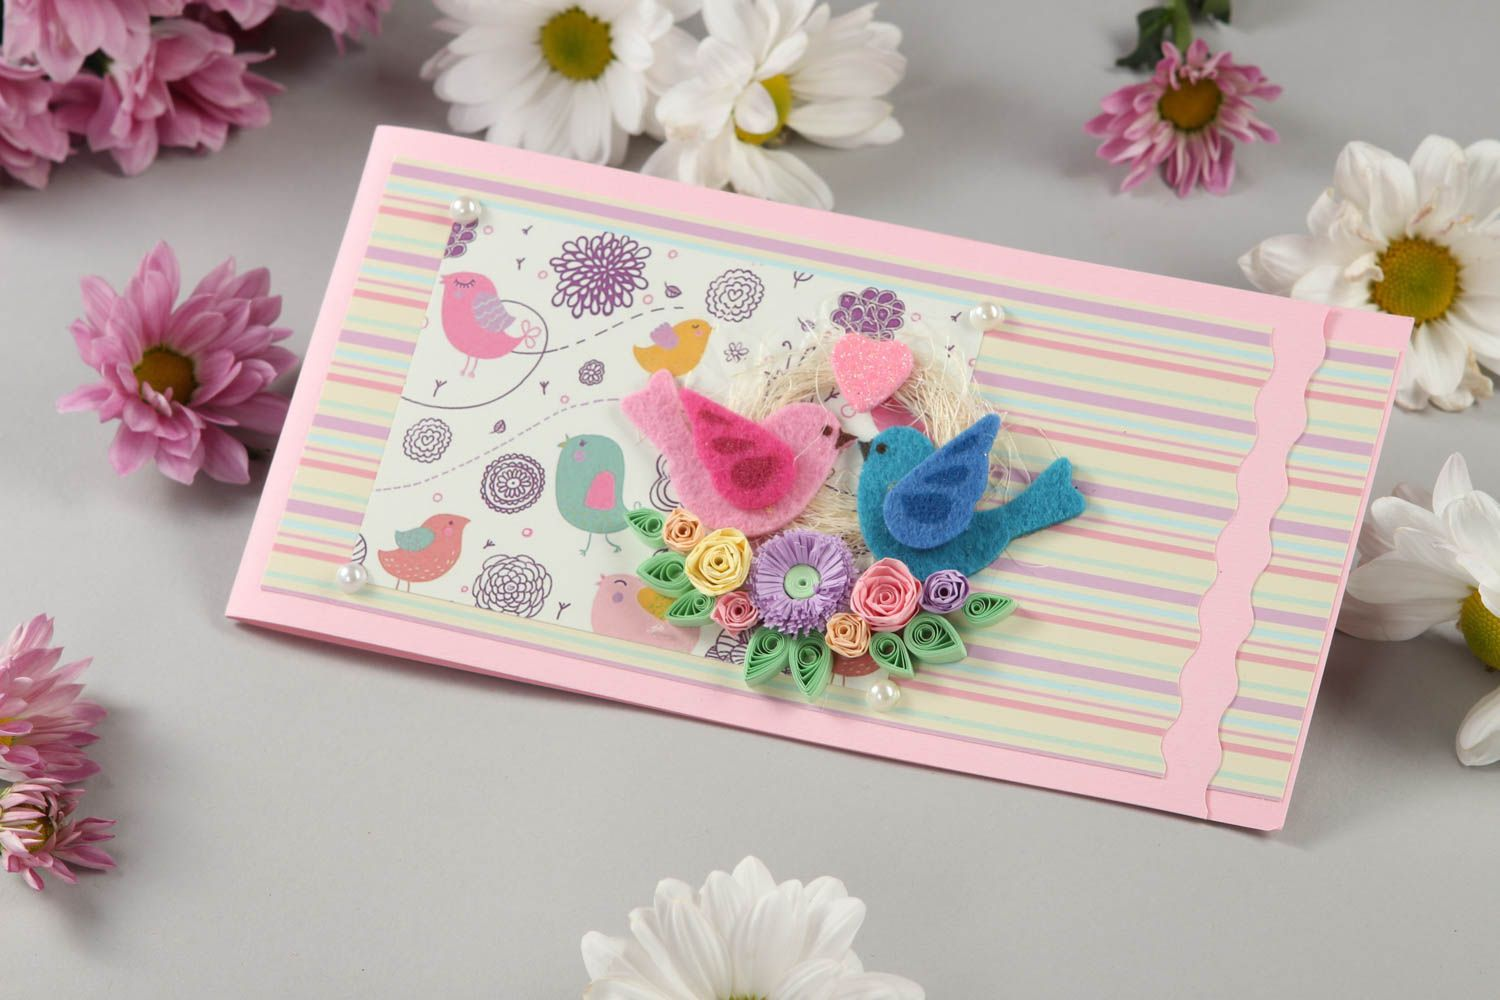 MADEHEART > Cute Handmade Greeting Card Birthday Greeting